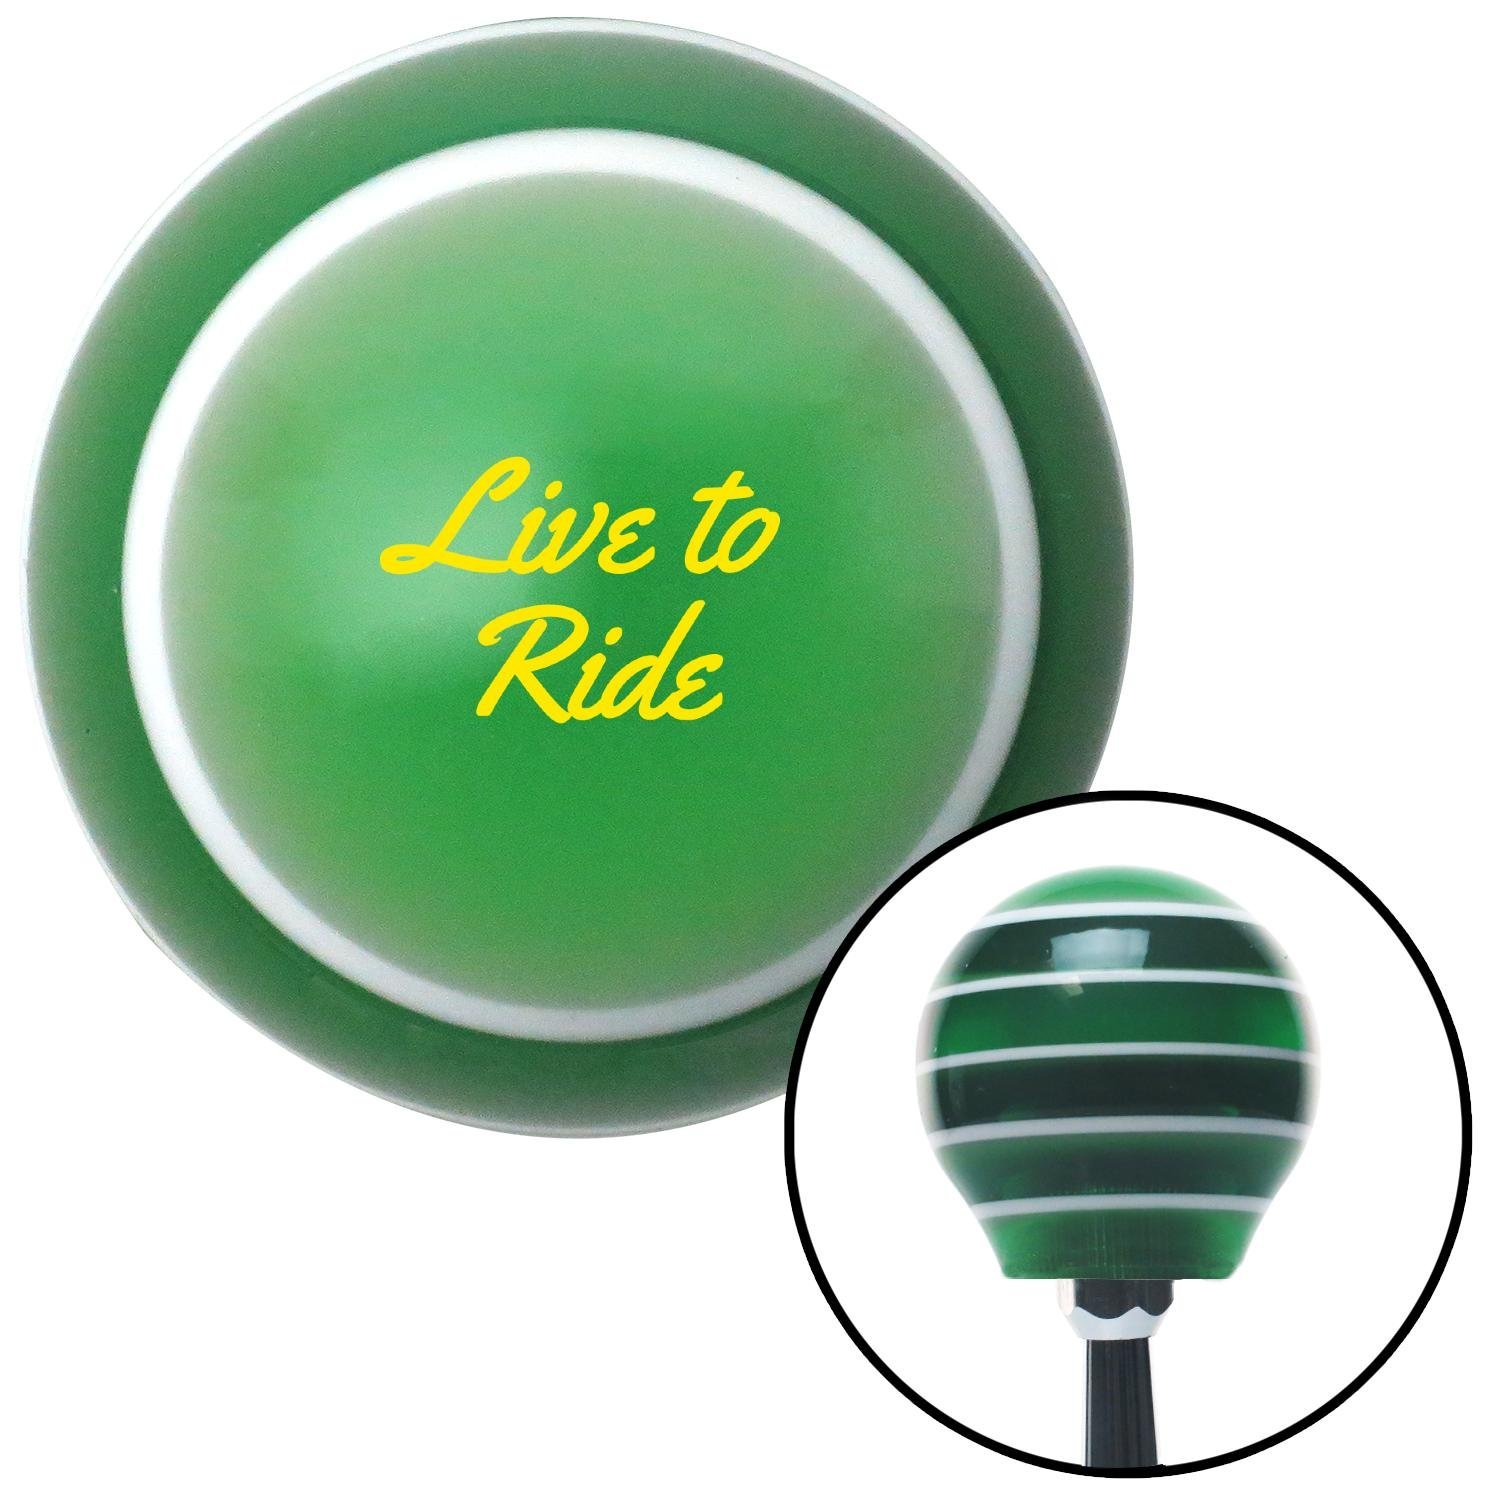 American Shifter 275089 Shift Knob Yellow Live to Ride Green Stripe with M16 x 1.5 Insert